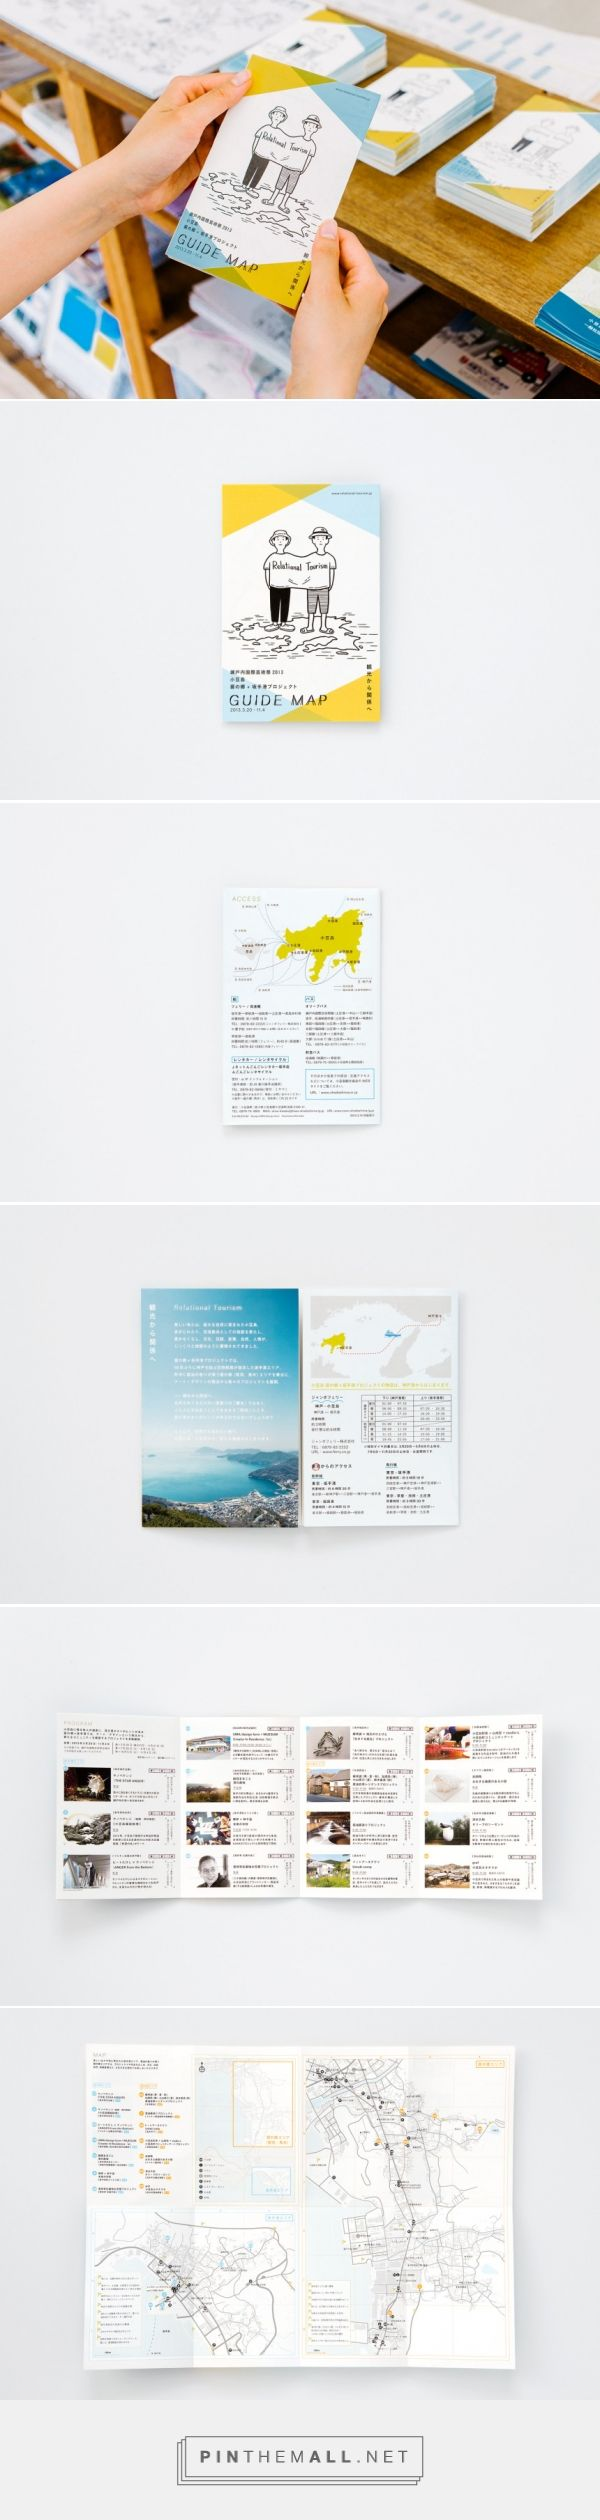 Guide Map of Hishio no Sato and Sakate Port Project in Setouchi Toriennale 2013 : UMA / design farm